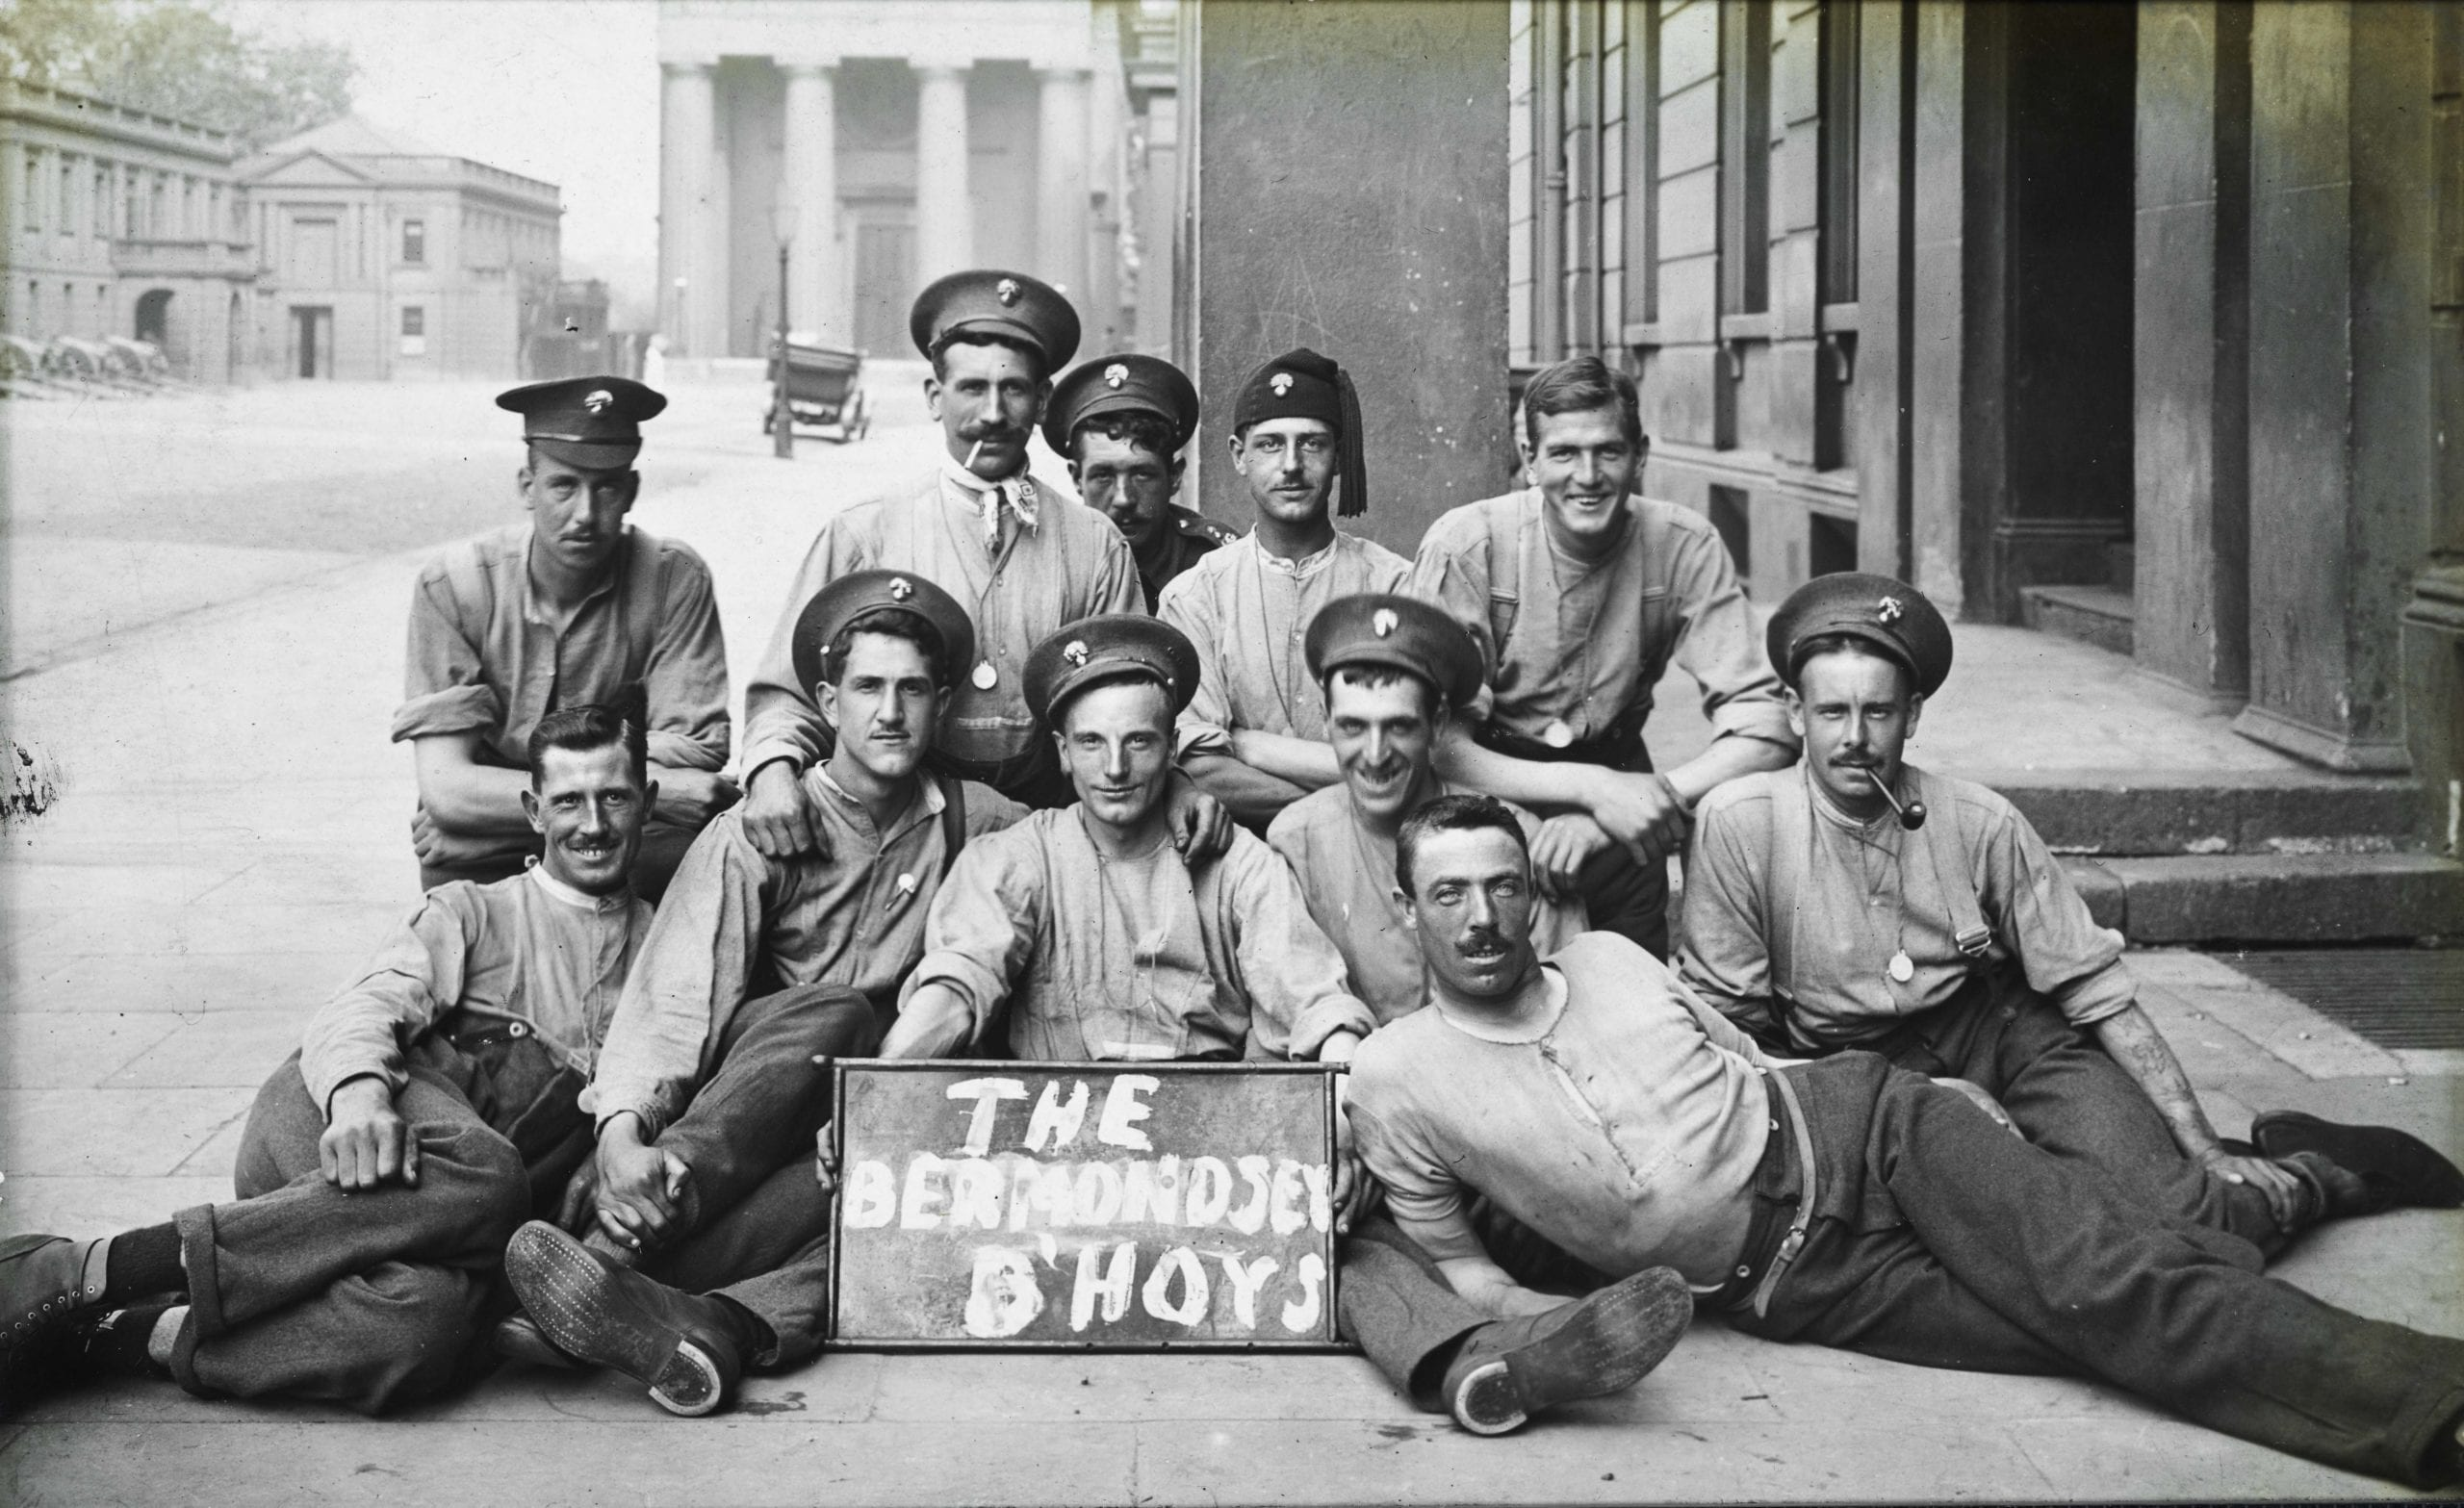 'Bermondsey B'hoys' from the 2nd Grenadier Guards inside their base at Wellington Barracks in either 1914 or 1915